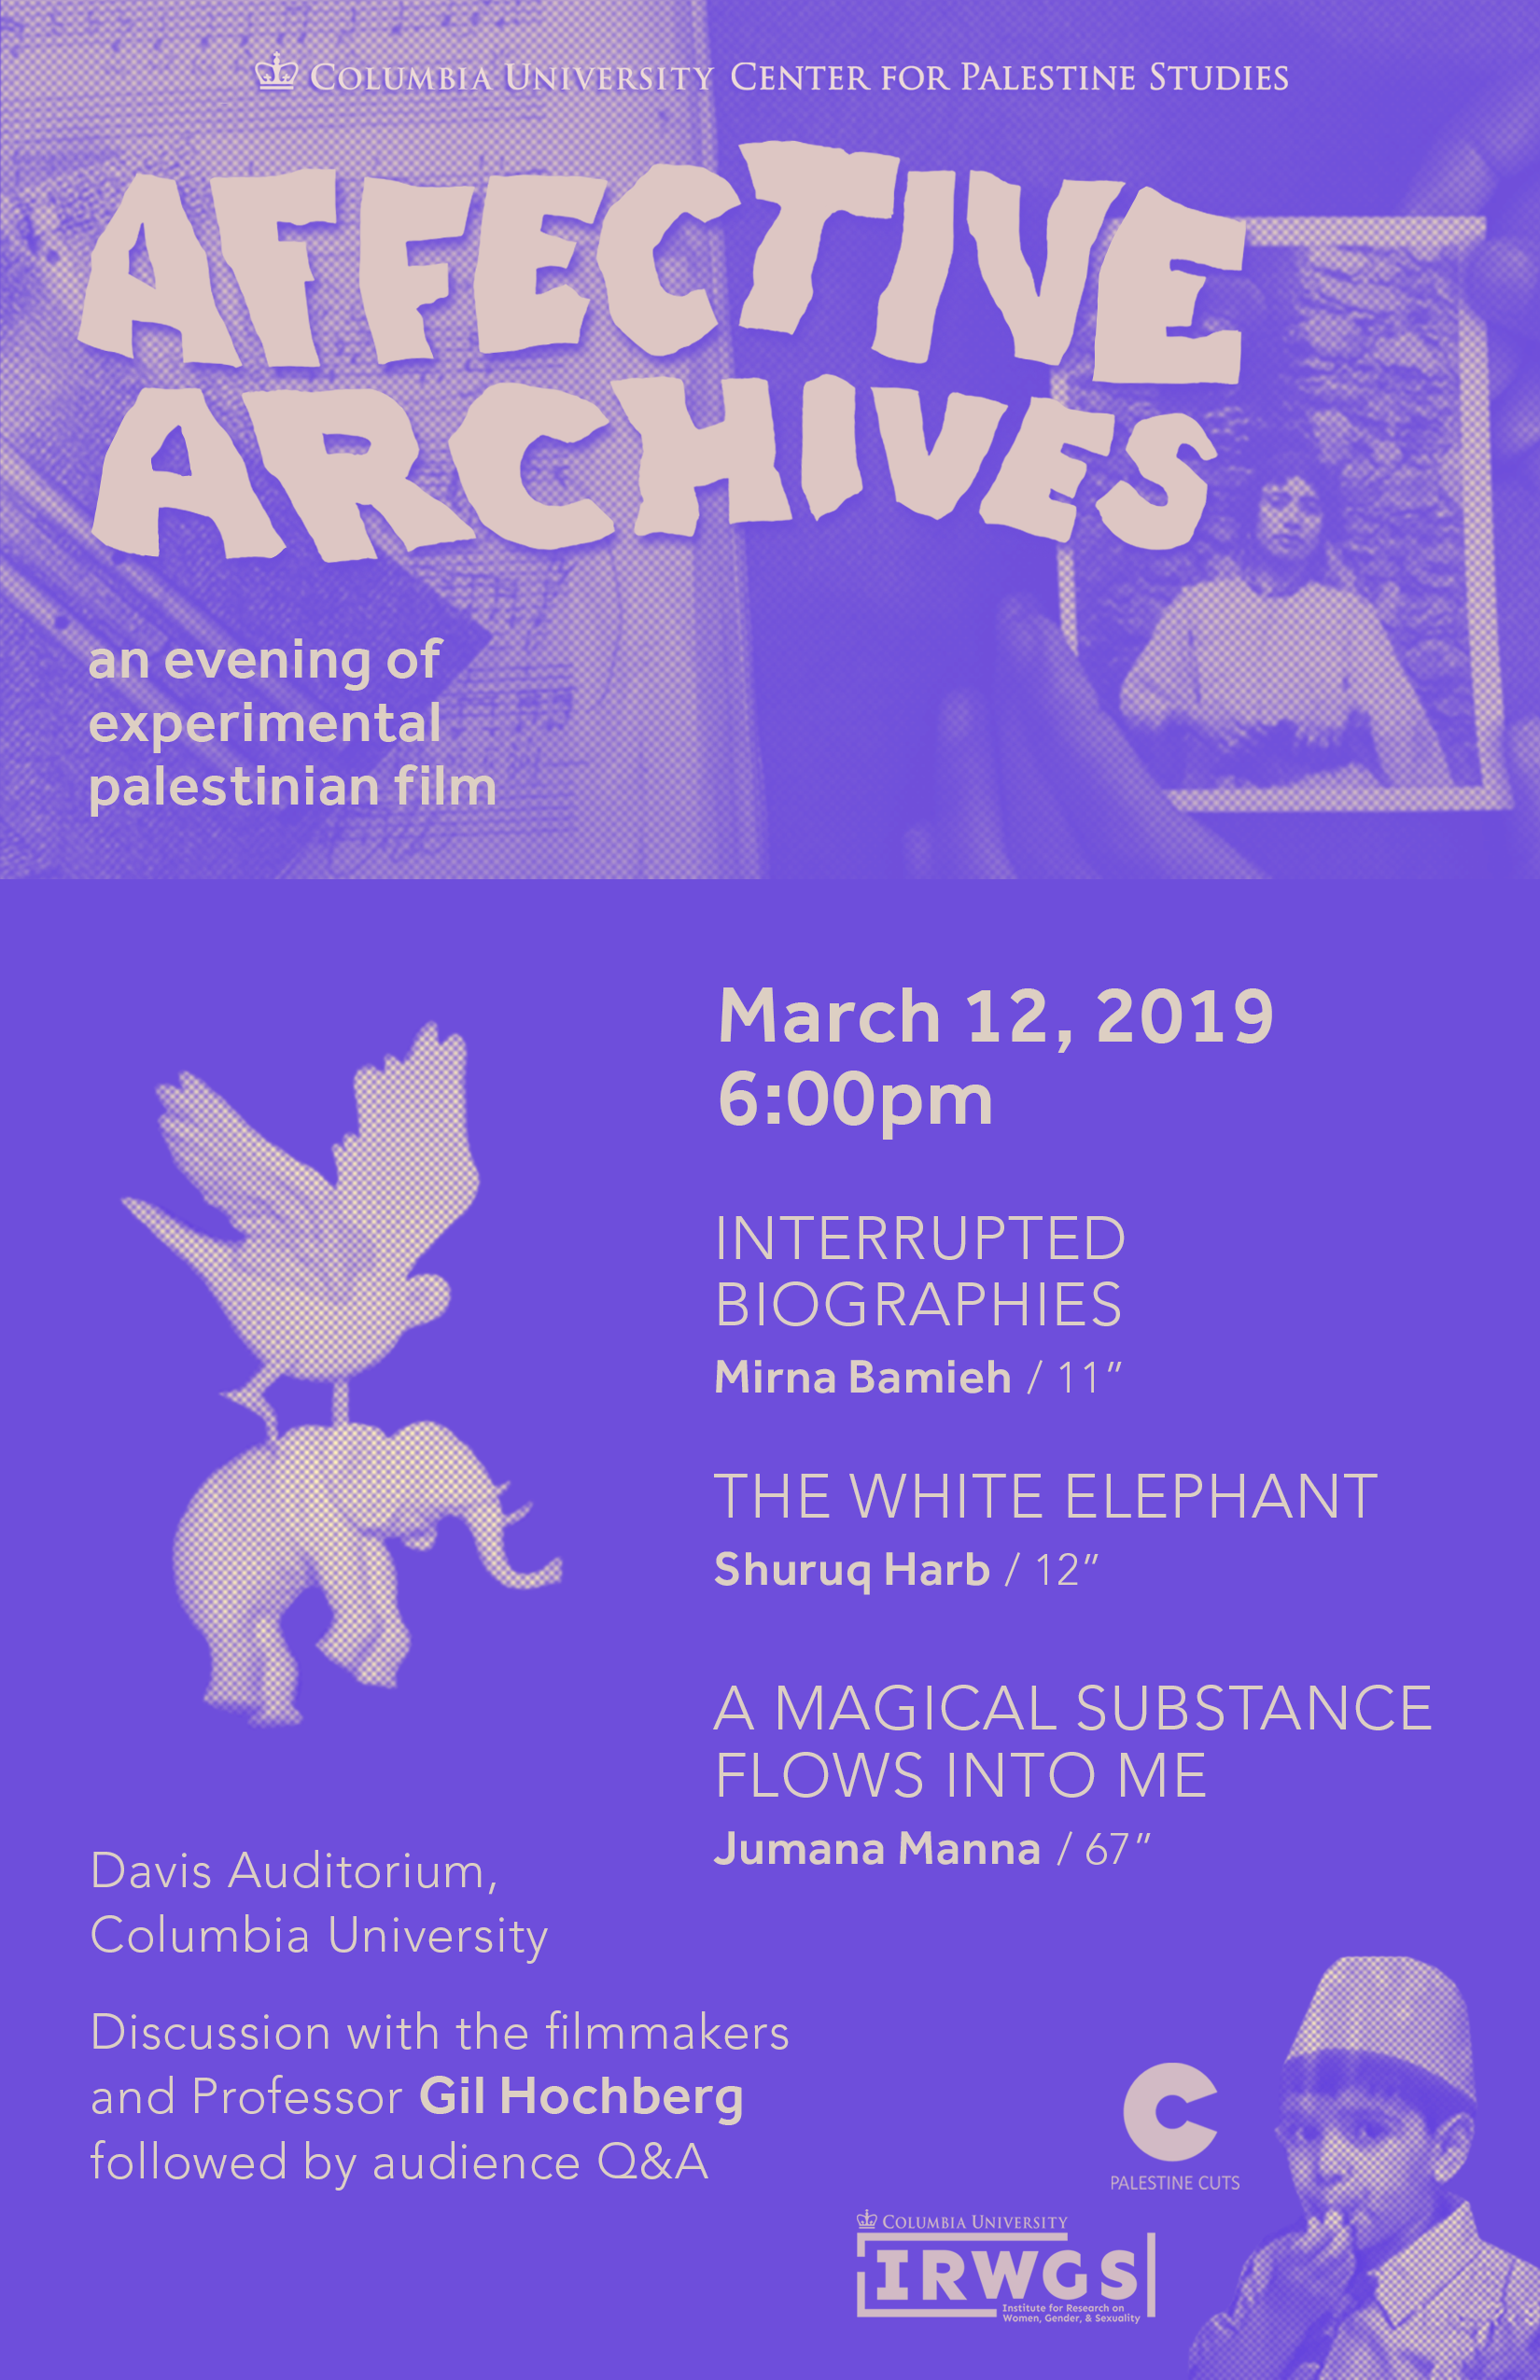 AFFECTIVE ARCHIVES 02 19 2019.png